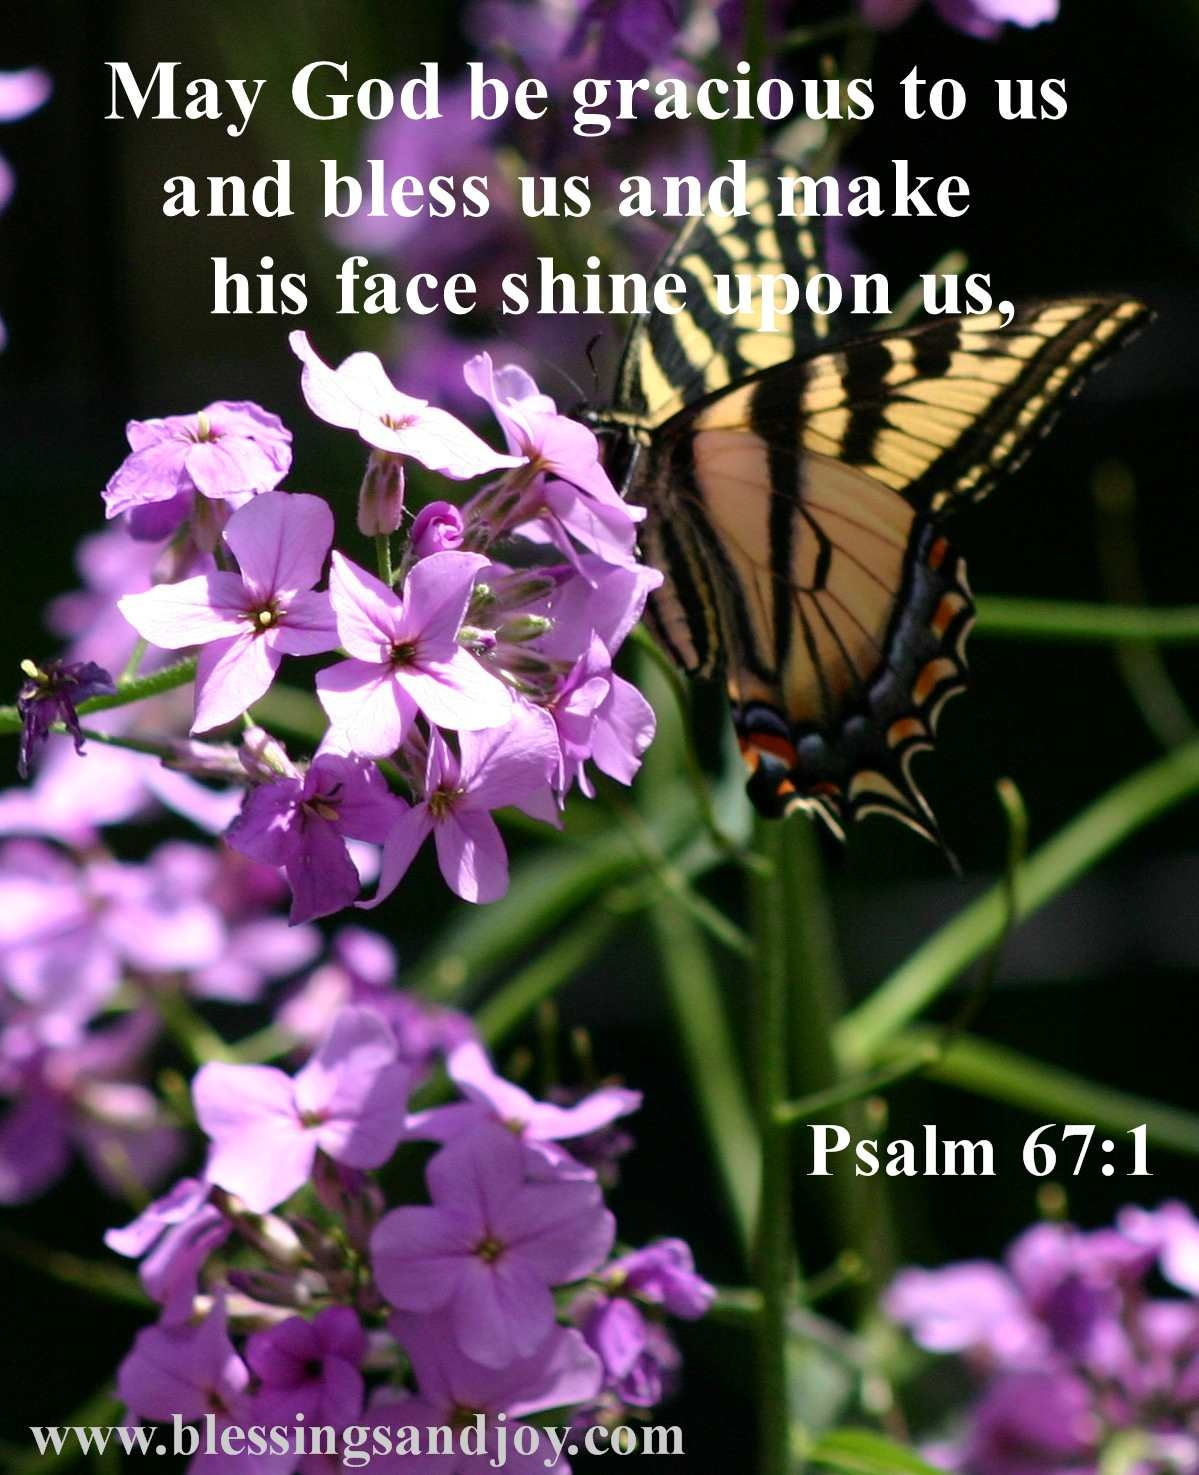 blessings_Psalm_67_1_may_god_be_gracious-18